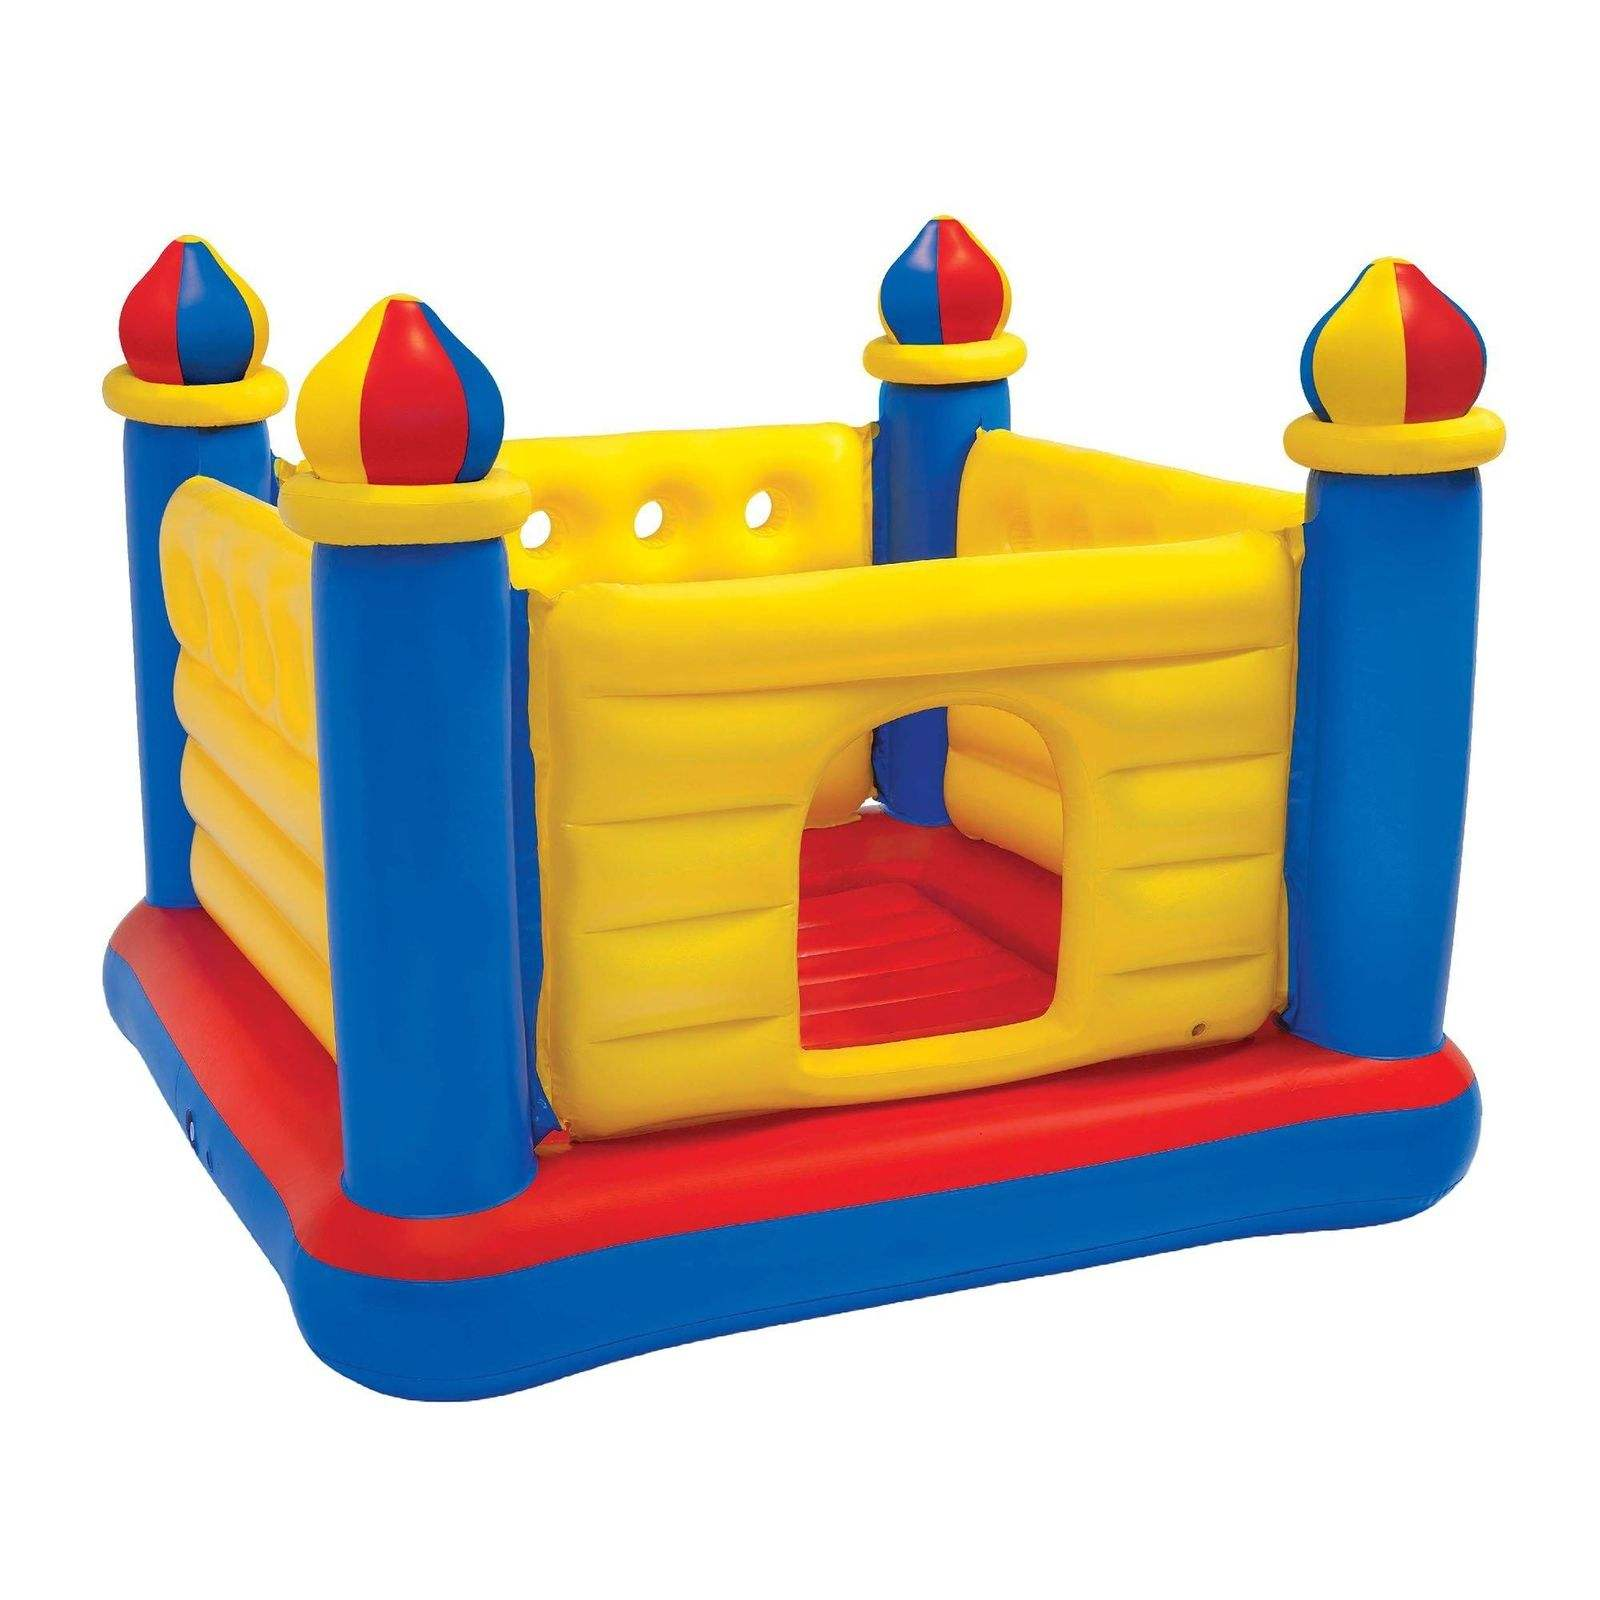 Intex 48259 Indoor Playground Toys JUMP-O-LENE Inflatable Jumping Castle